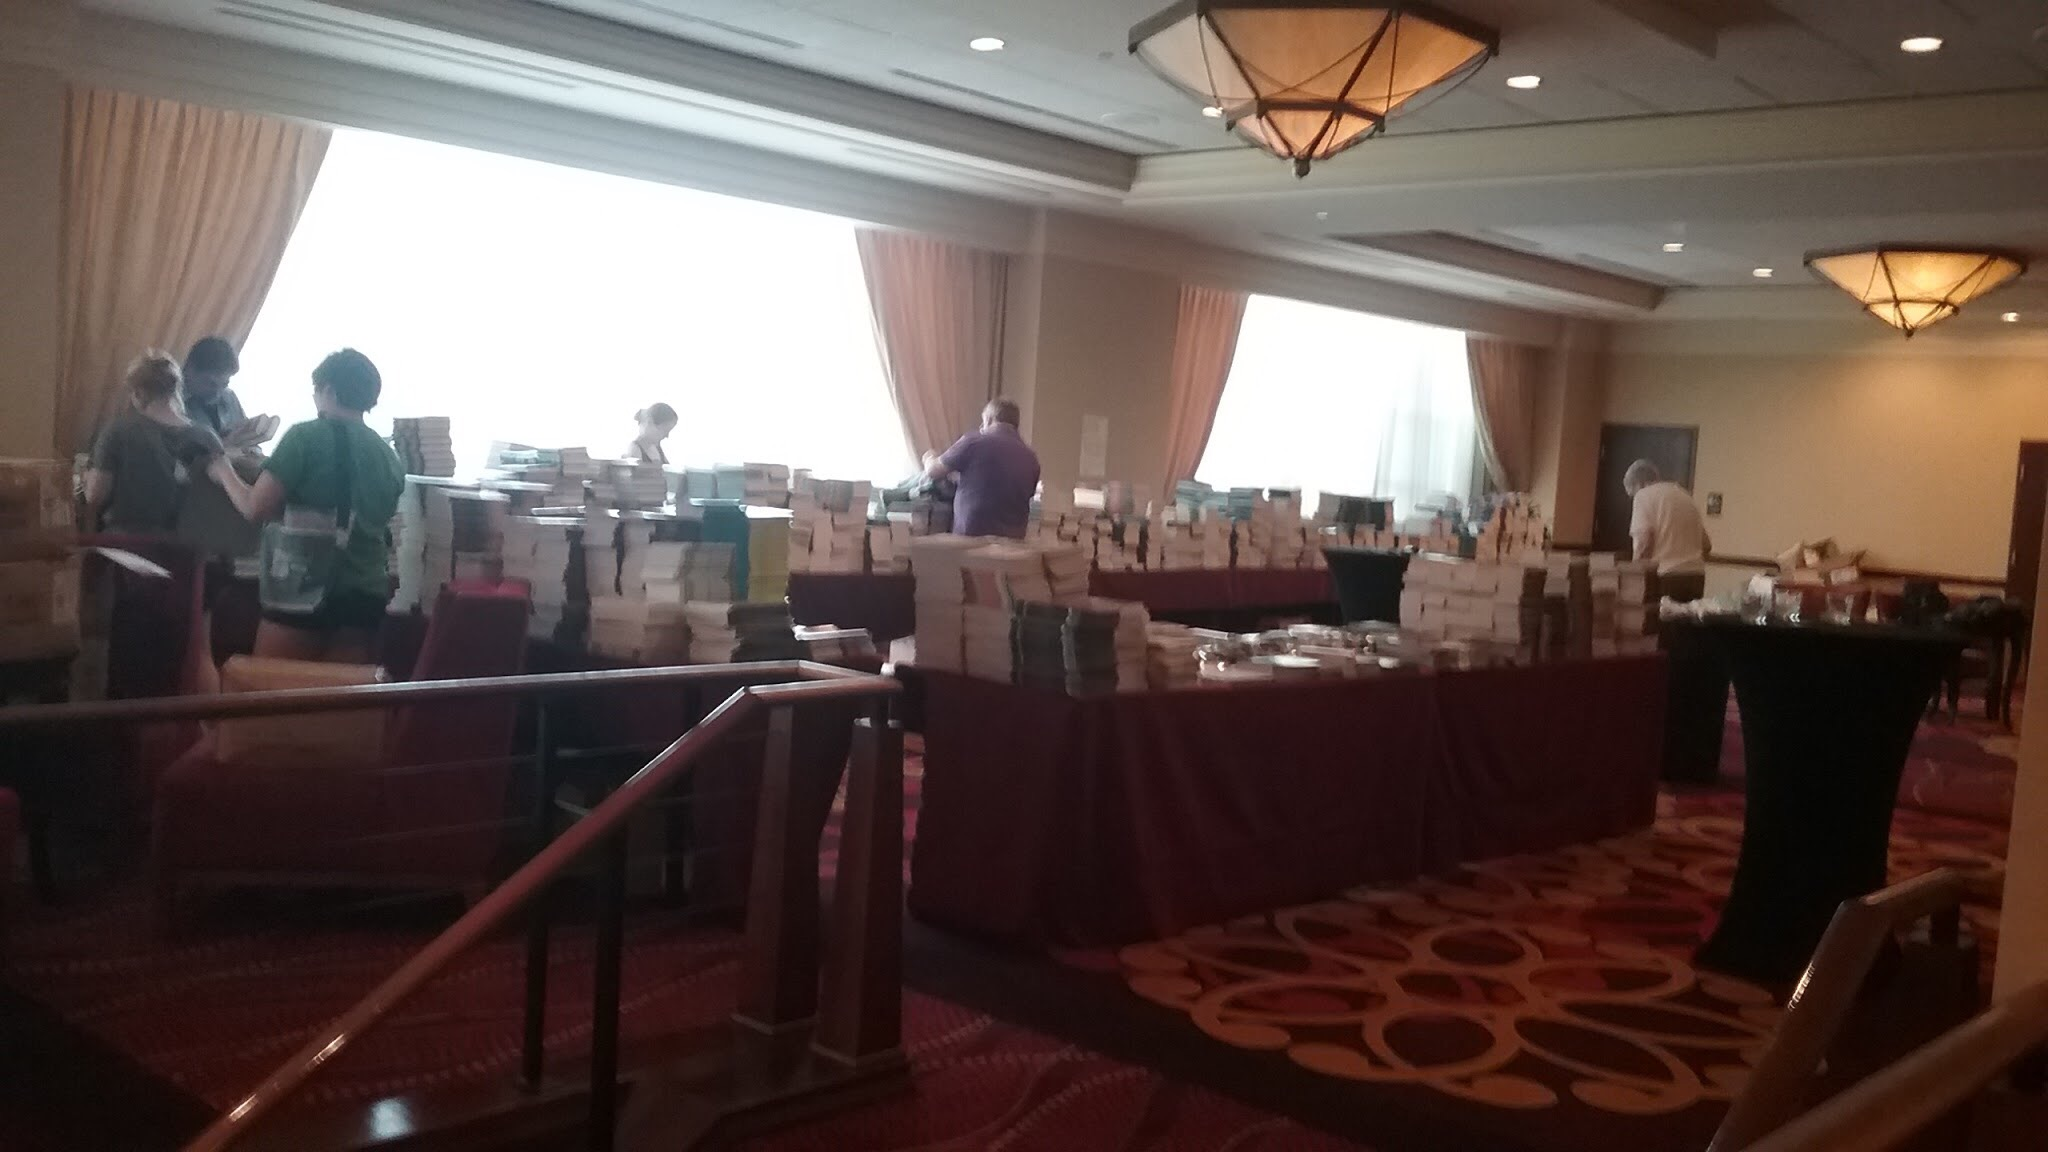 Tables piled high with books